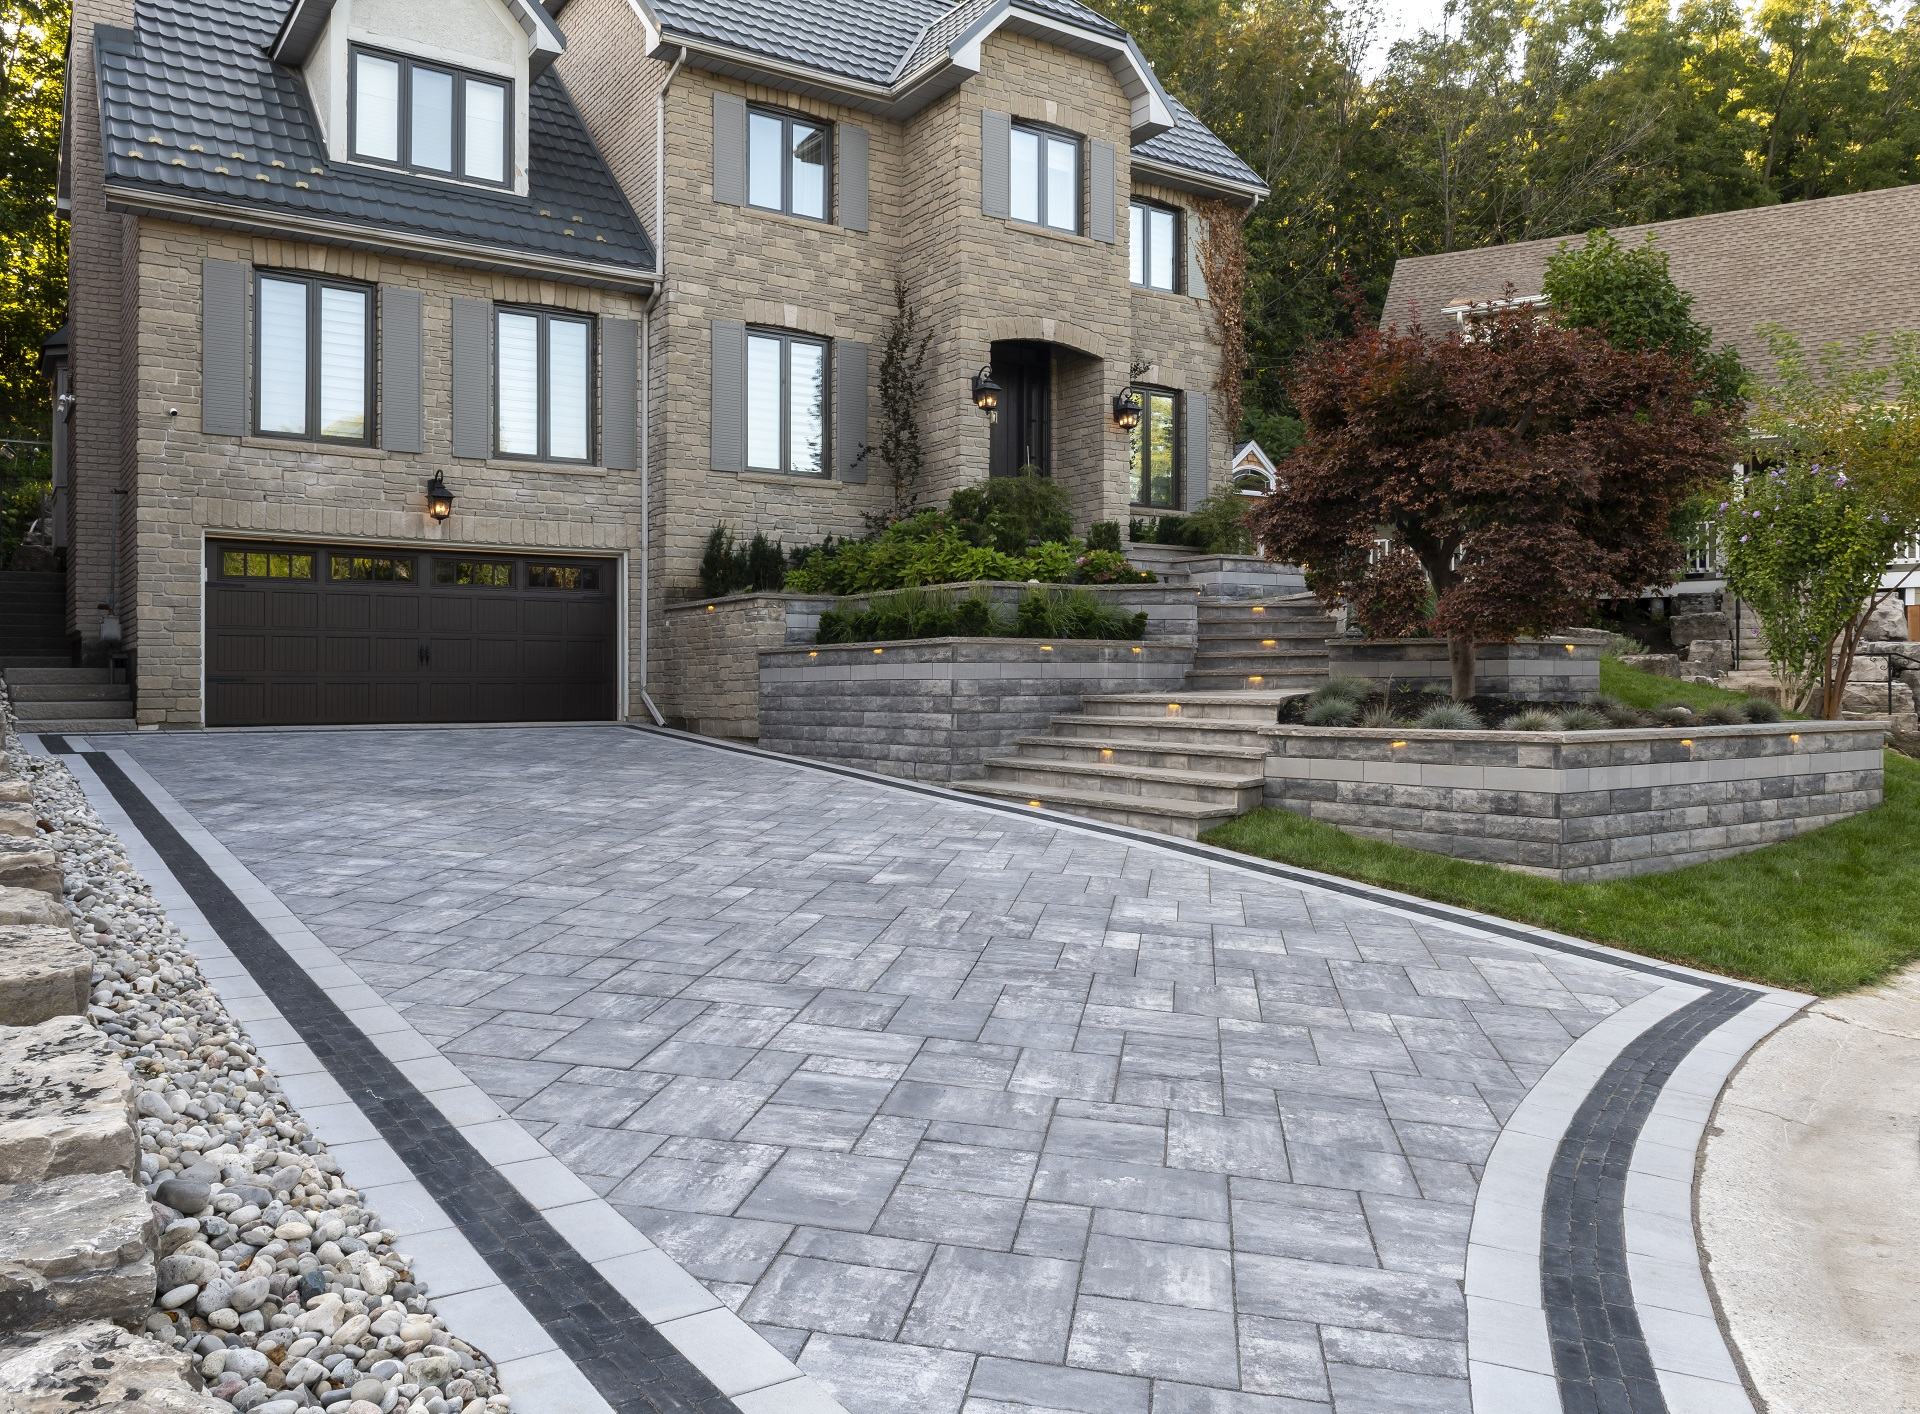 Patio pavers by lansdcaping companies in Shelby Township, MI